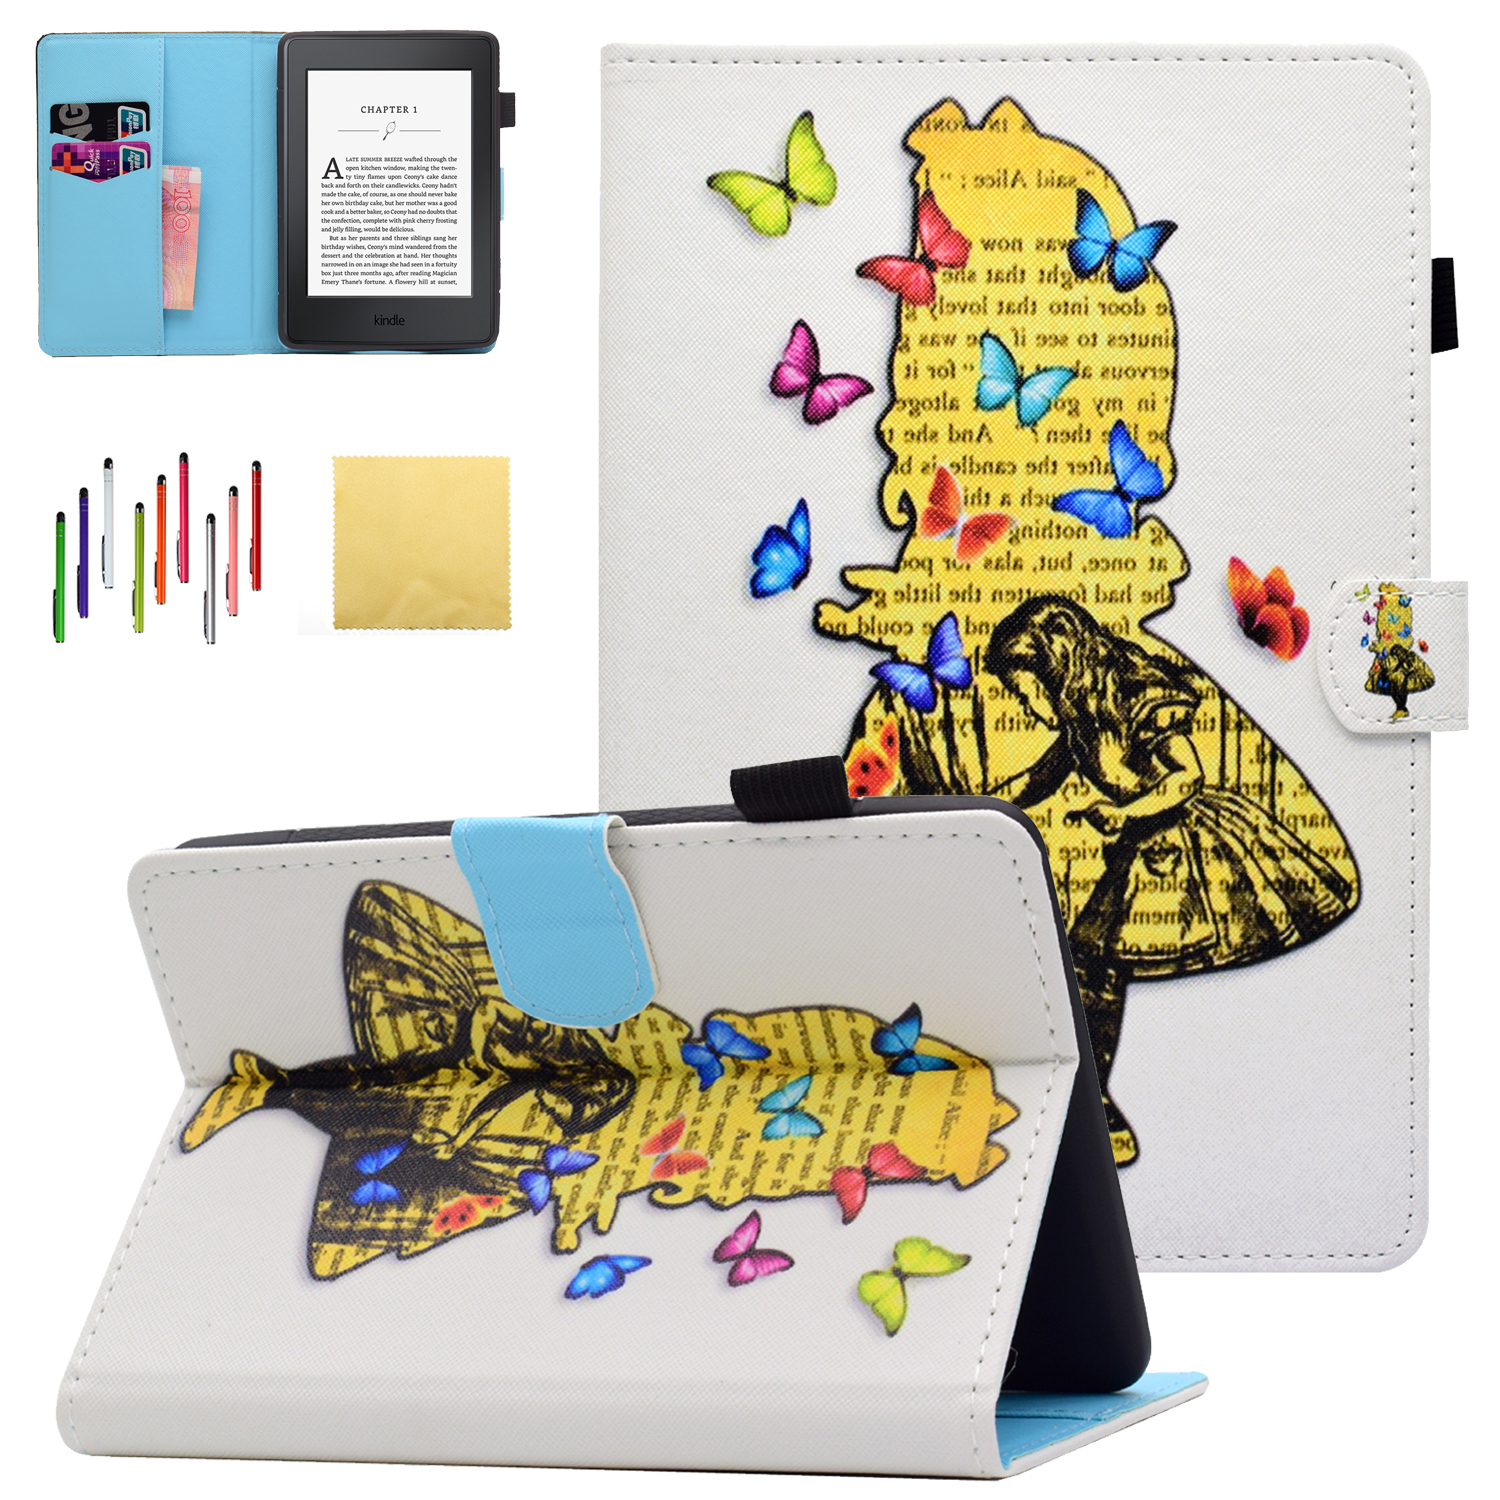 """Kindle Paperwhite 3 2 1 Case, Goodest PU Leather Folio Folding Stand Cover with Pencil Holder Auto Wake Sleep for Amazon Kindle Paperwhite 6"""" (Fits from 2012 to 2016 Versions), Girl"""